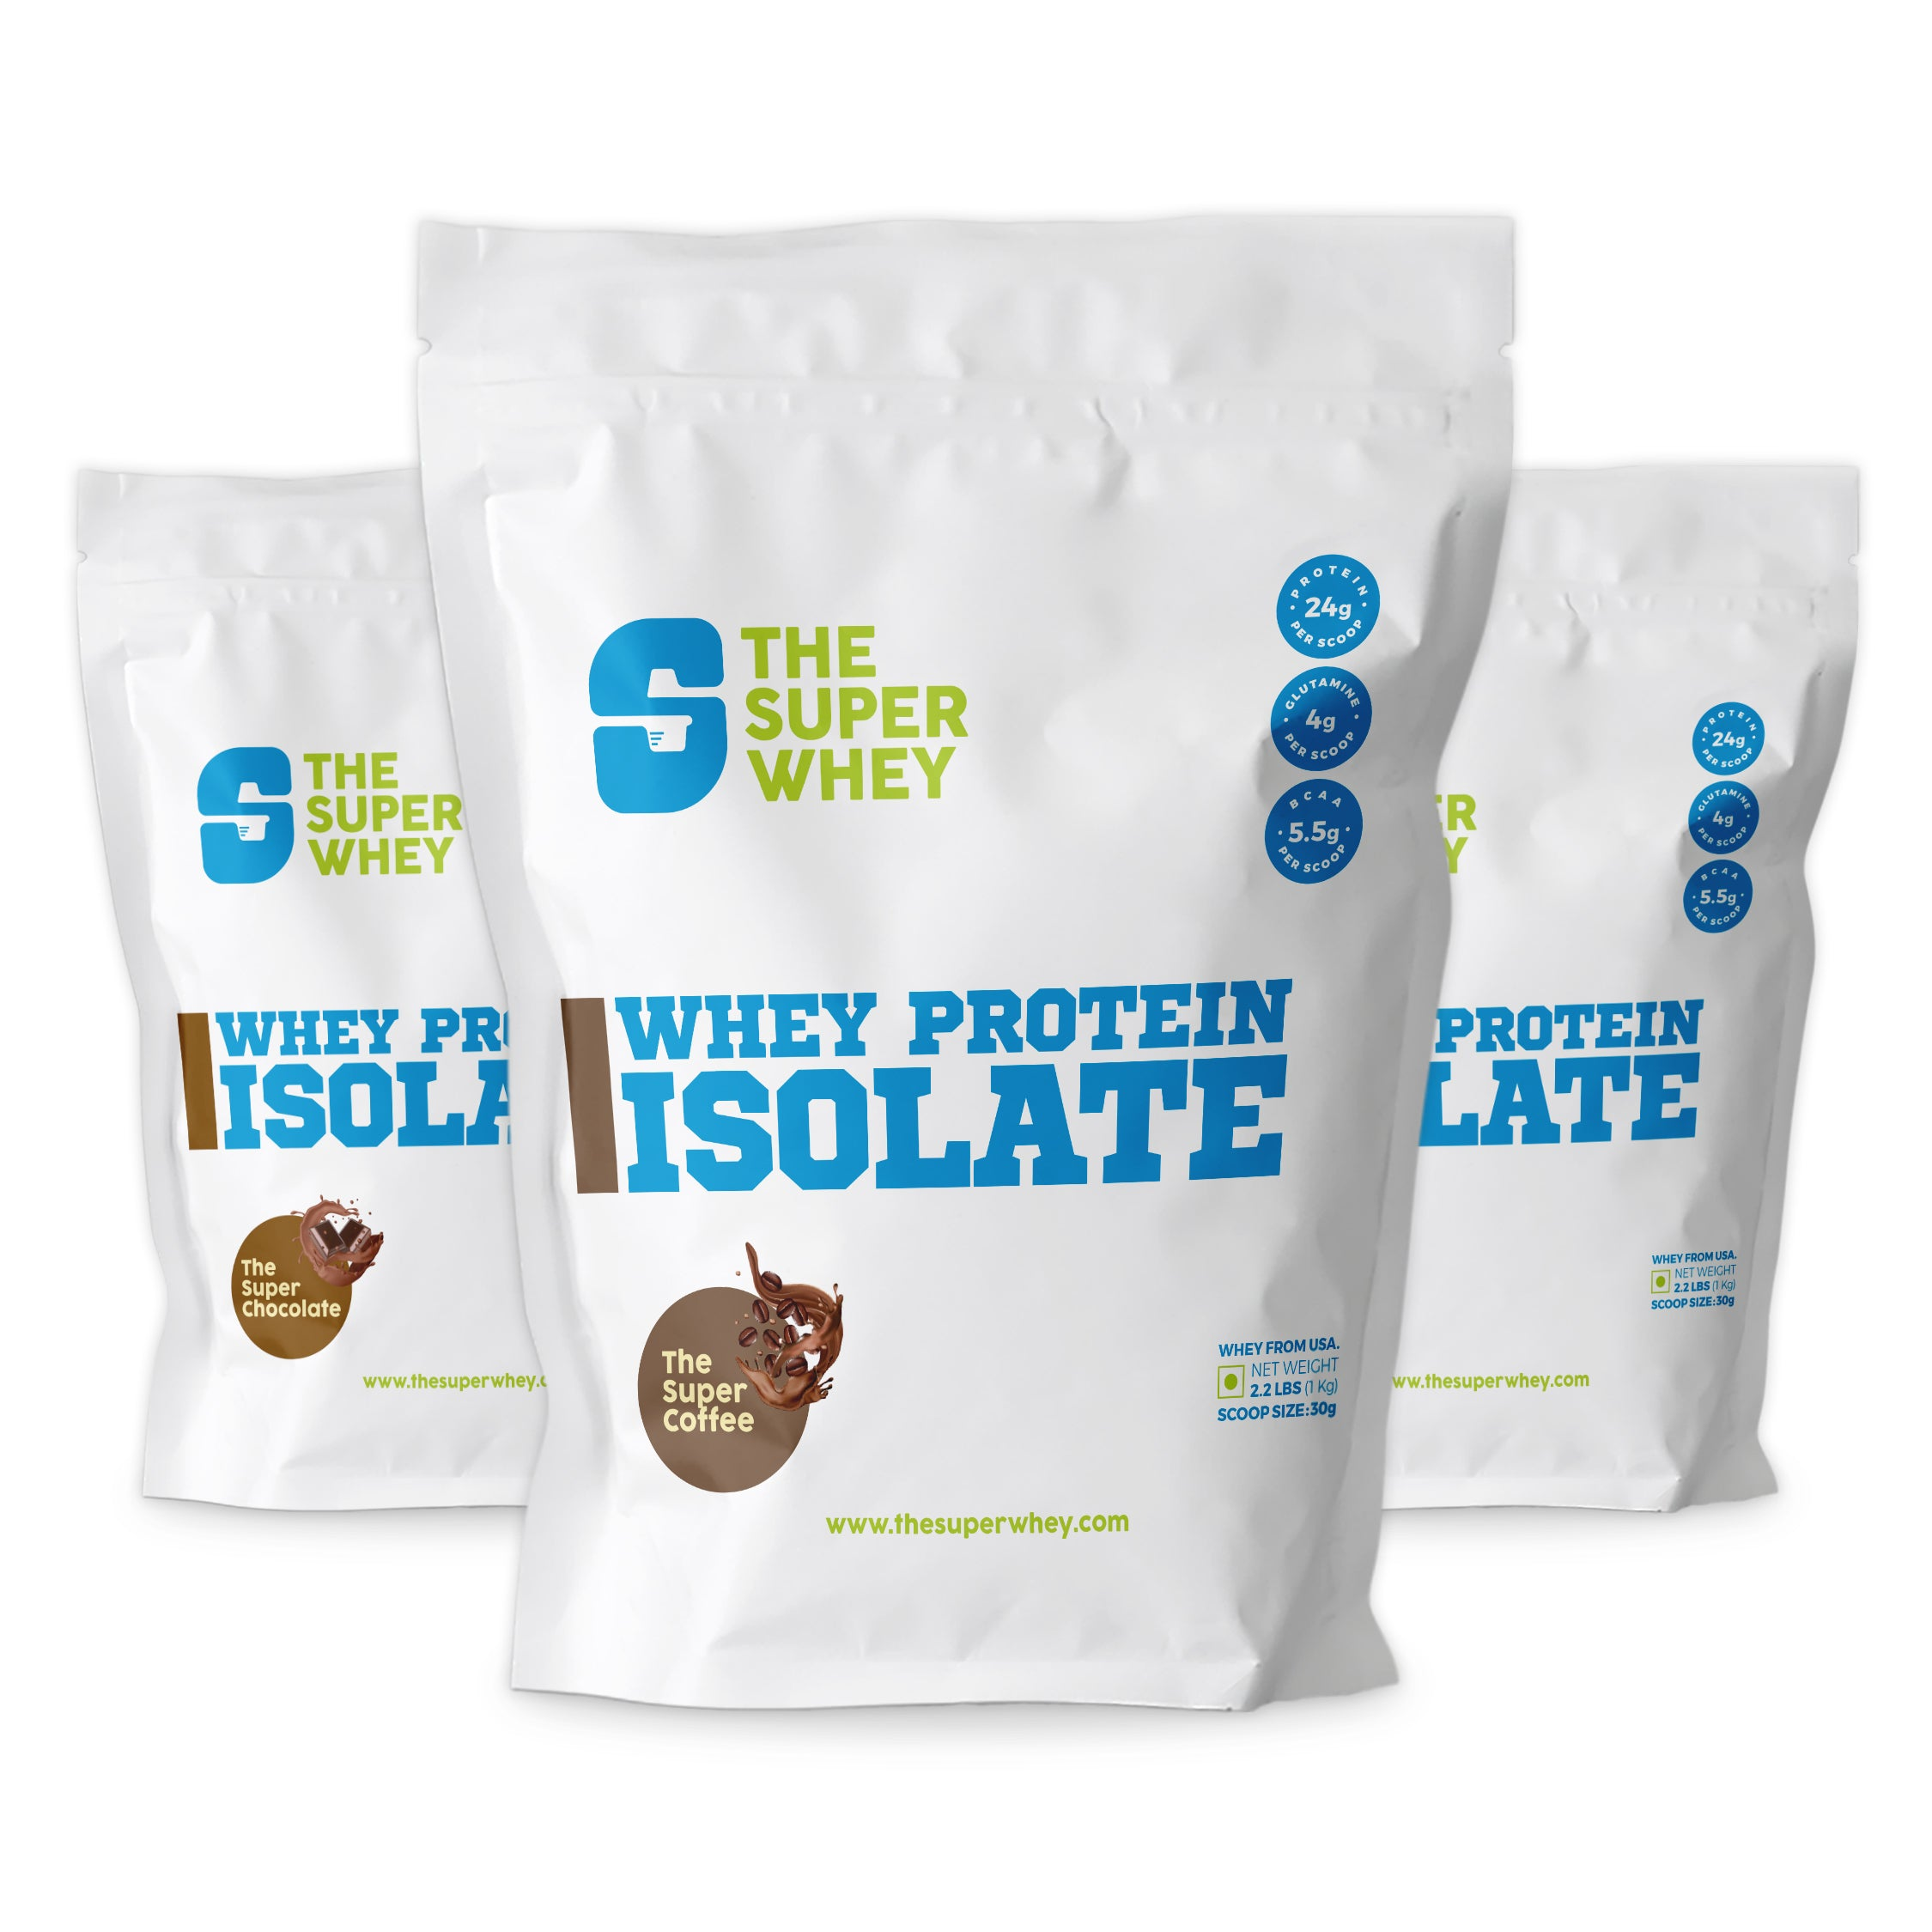 WHEY PROTEIN ISOLATE - The Super Coffee